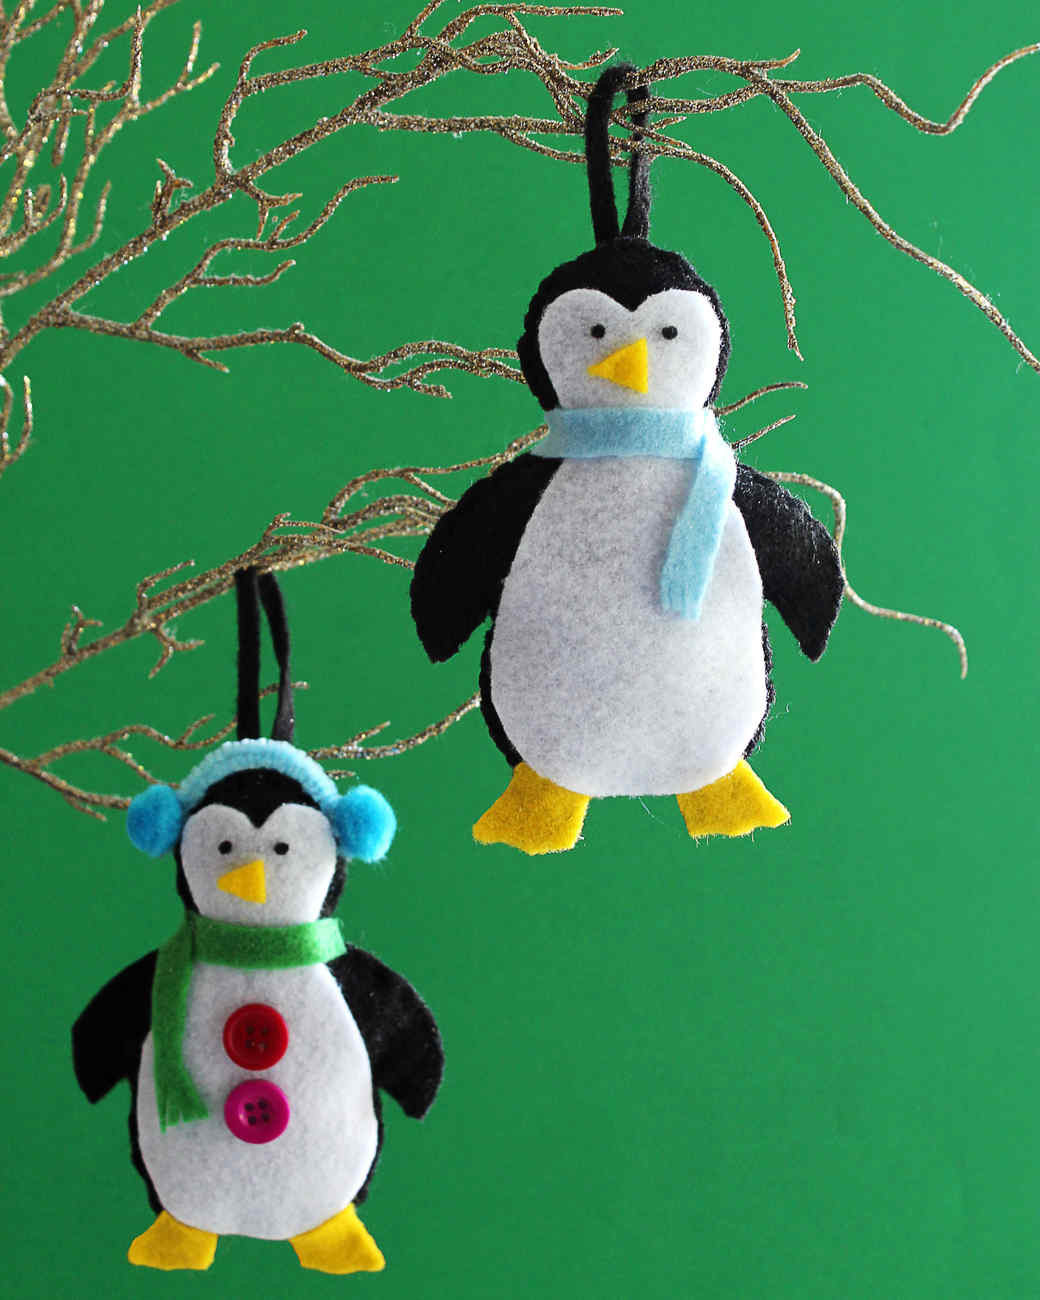 Best Of Make Your Own Adorable Felt Penguin ornaments for the Holidays Penguin Christmas ornaments Of Top 50 Models Penguin Christmas ornaments